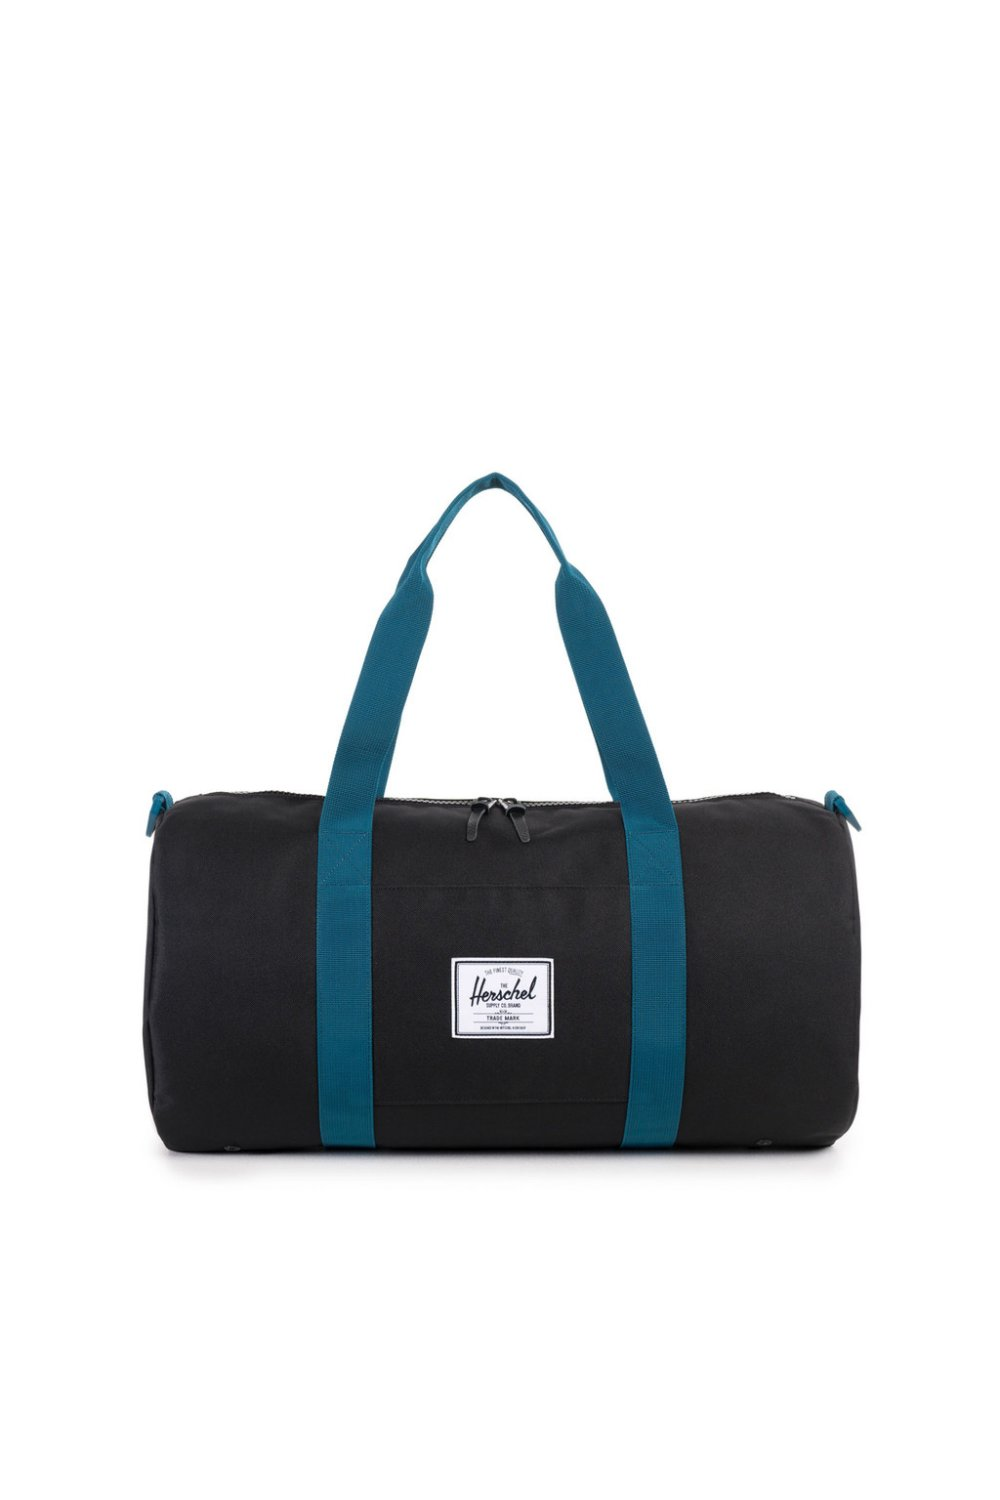 f88c0f2a8a09 ... Herschel Supply Co Sutton Mid-Volume Duffle Bag (Black Ink Blue). Tap  image to zoom. Sutton Mid-Volume Duffle Bag (Black Ink Blue)